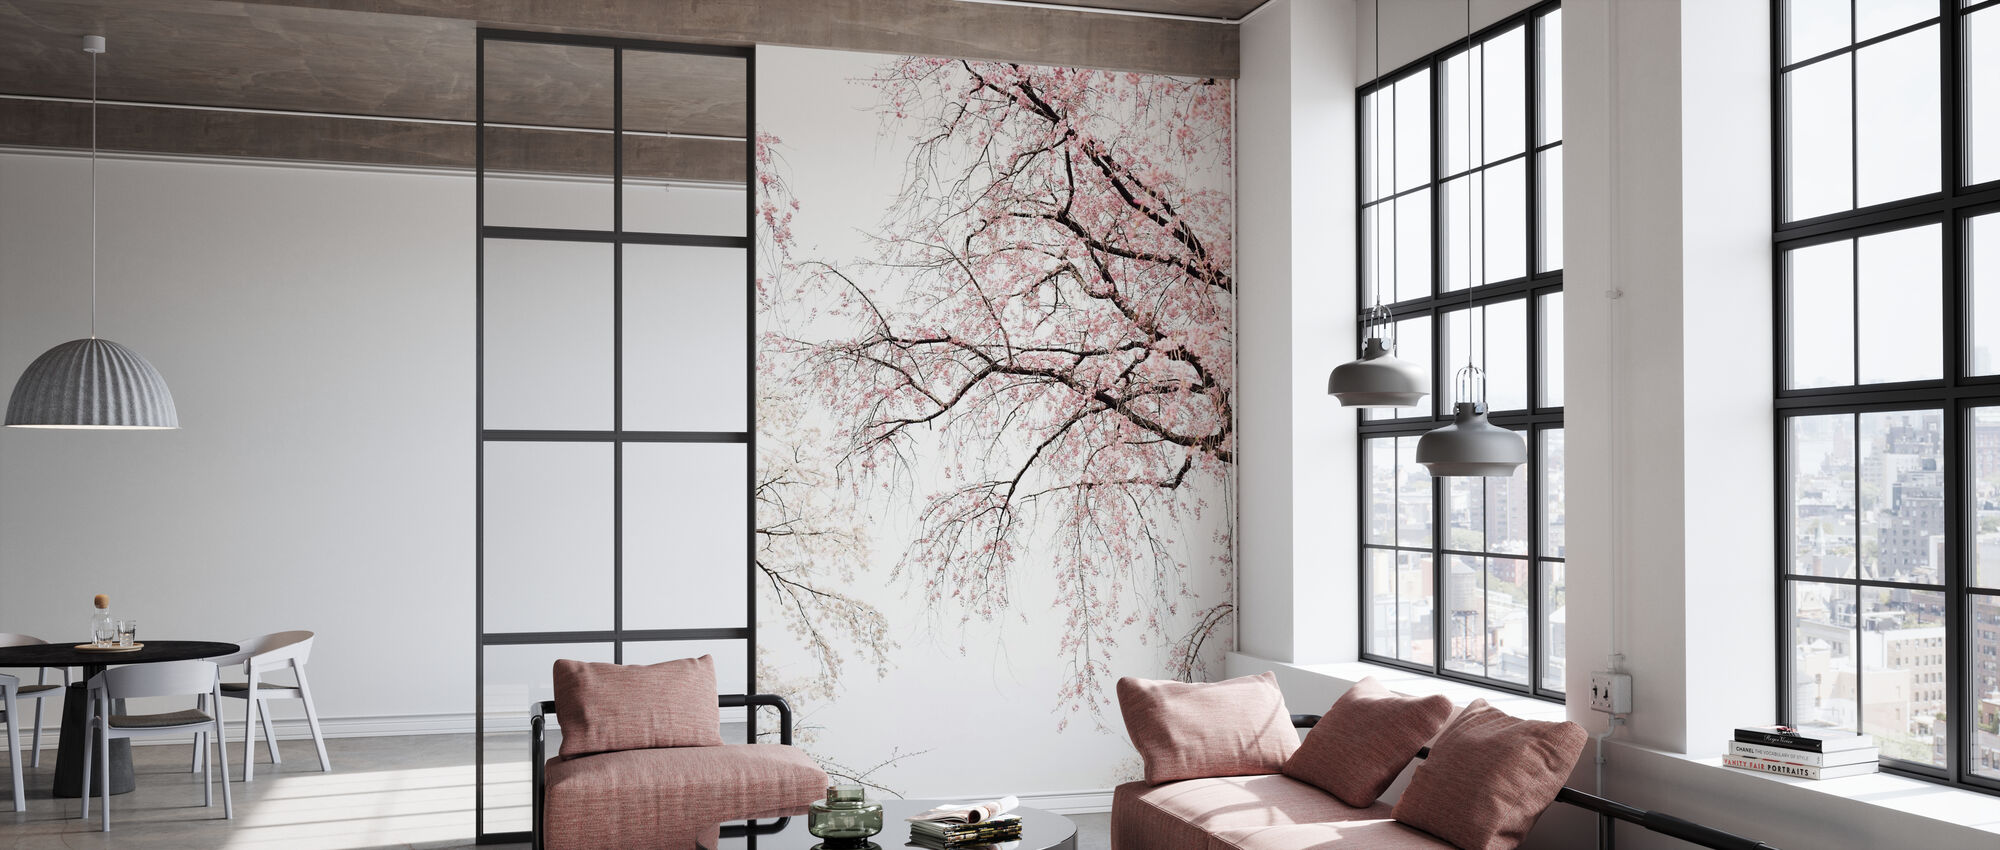 Cherry Blossoms - Wallpaper - Office